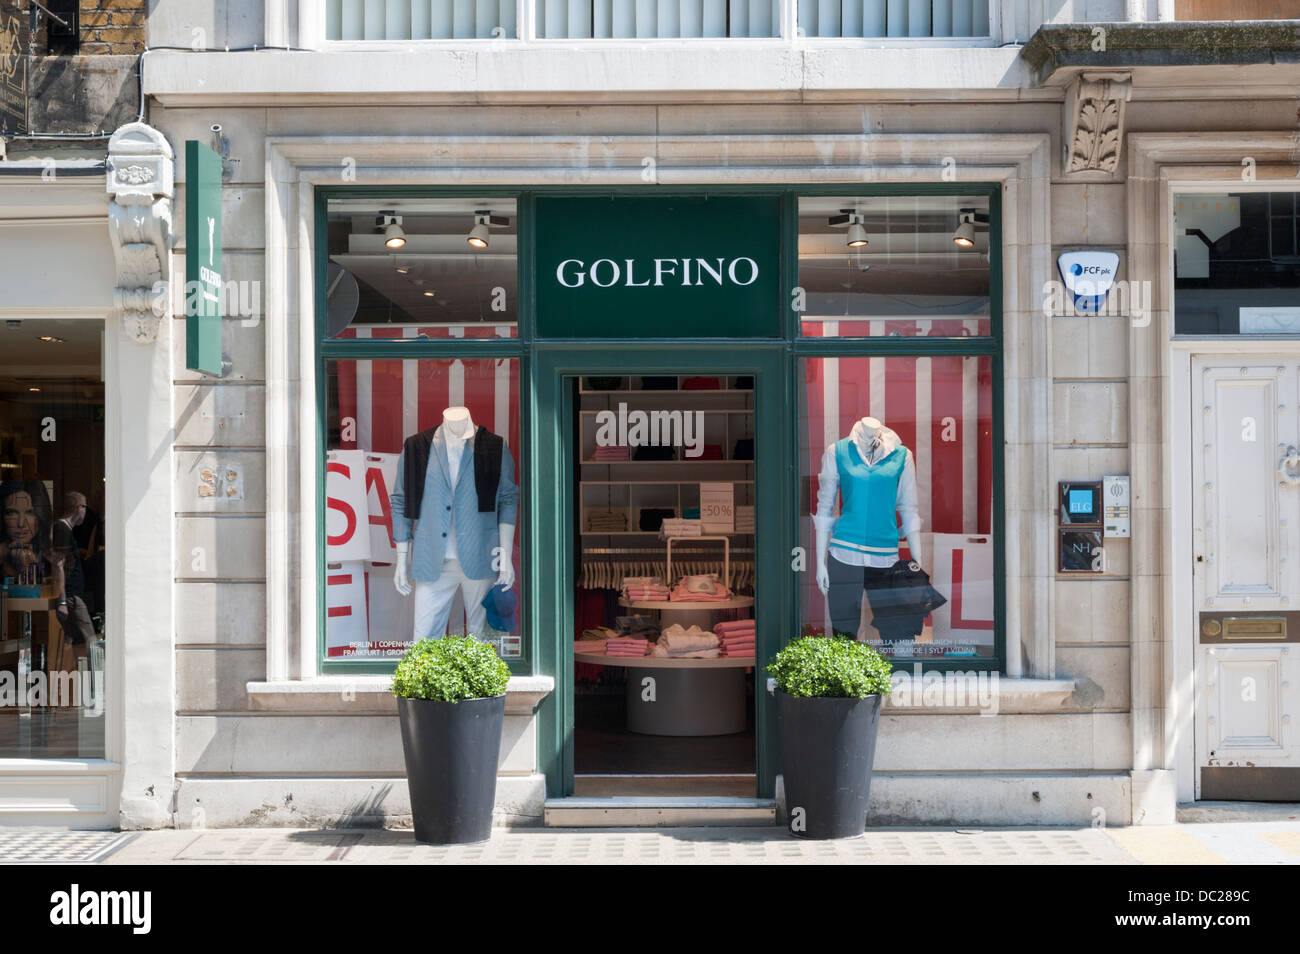 The Golfino clothes shop South Molton Street London UK - Stock Image